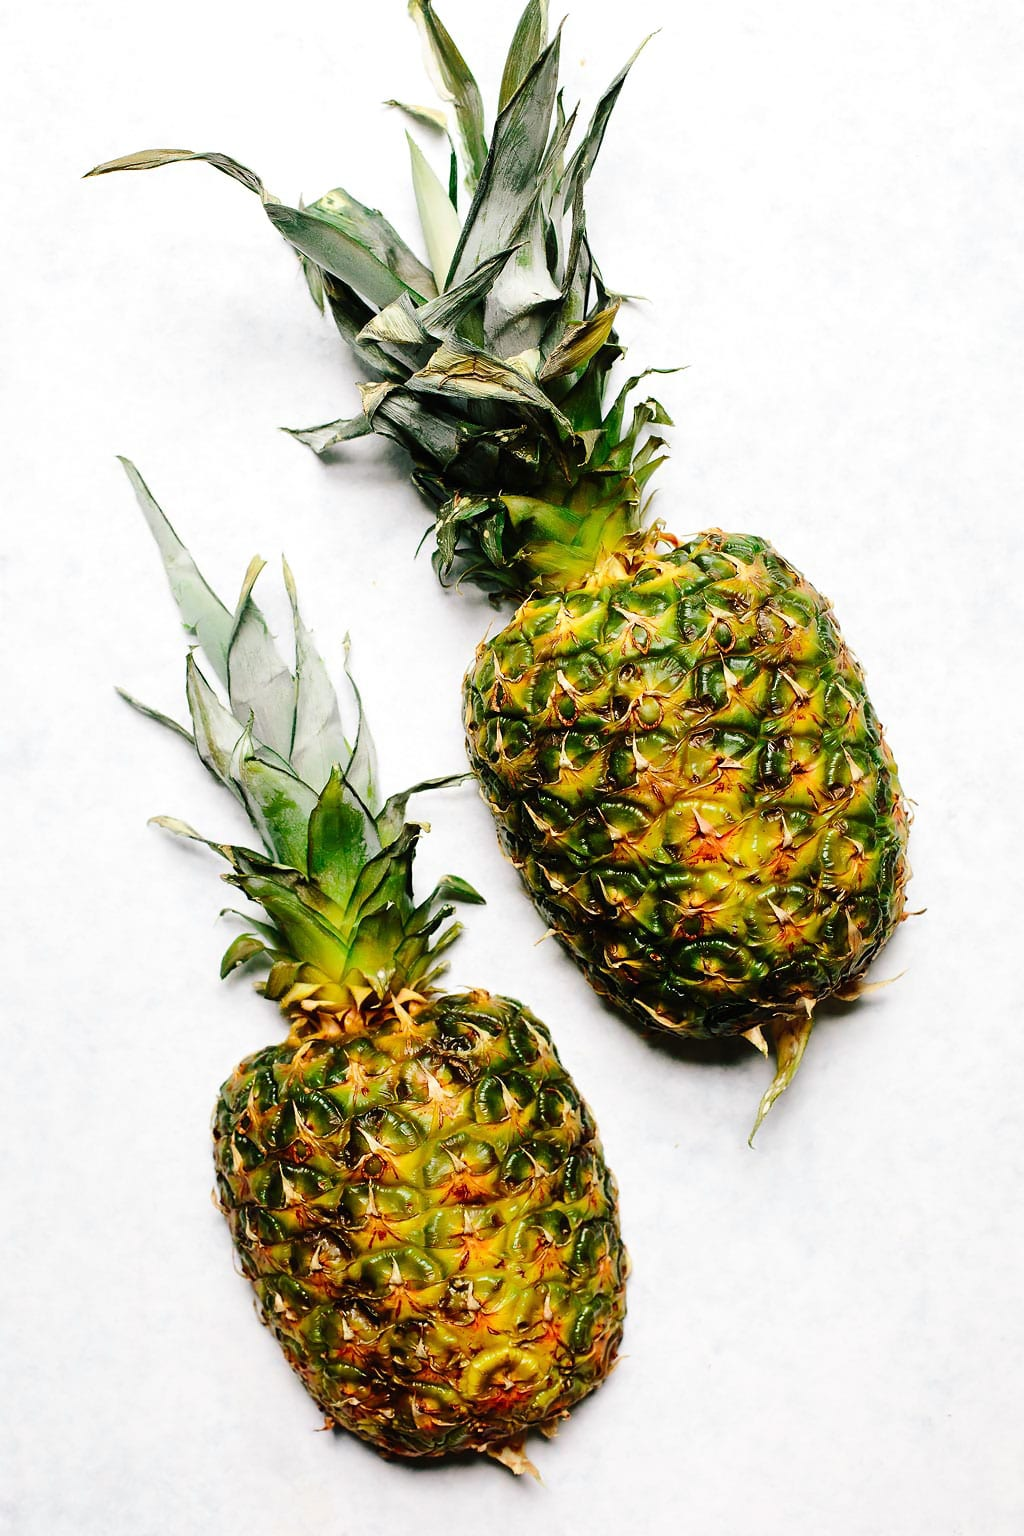 Pineapple Cut in Half